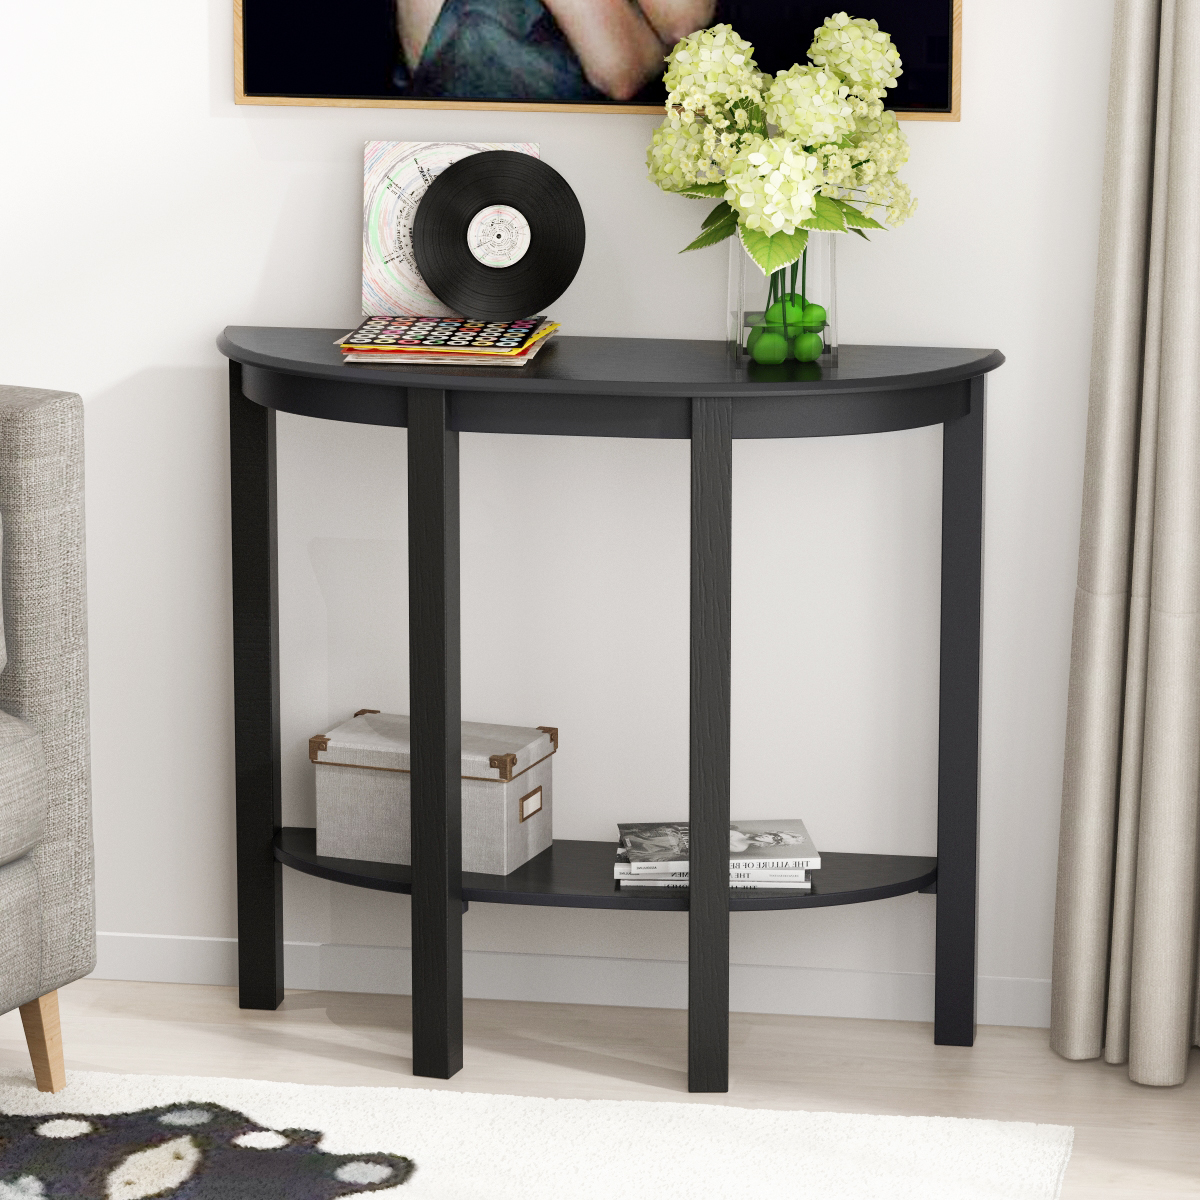 Picture of: Console Table Sofa Table For Entryway Semi Circle Sofa Side Table With Shelves And Solid Wood Legs 2 Tier Entry Table For Hallway Living Room Bedroom Espresso Walmart Com Walmart Com